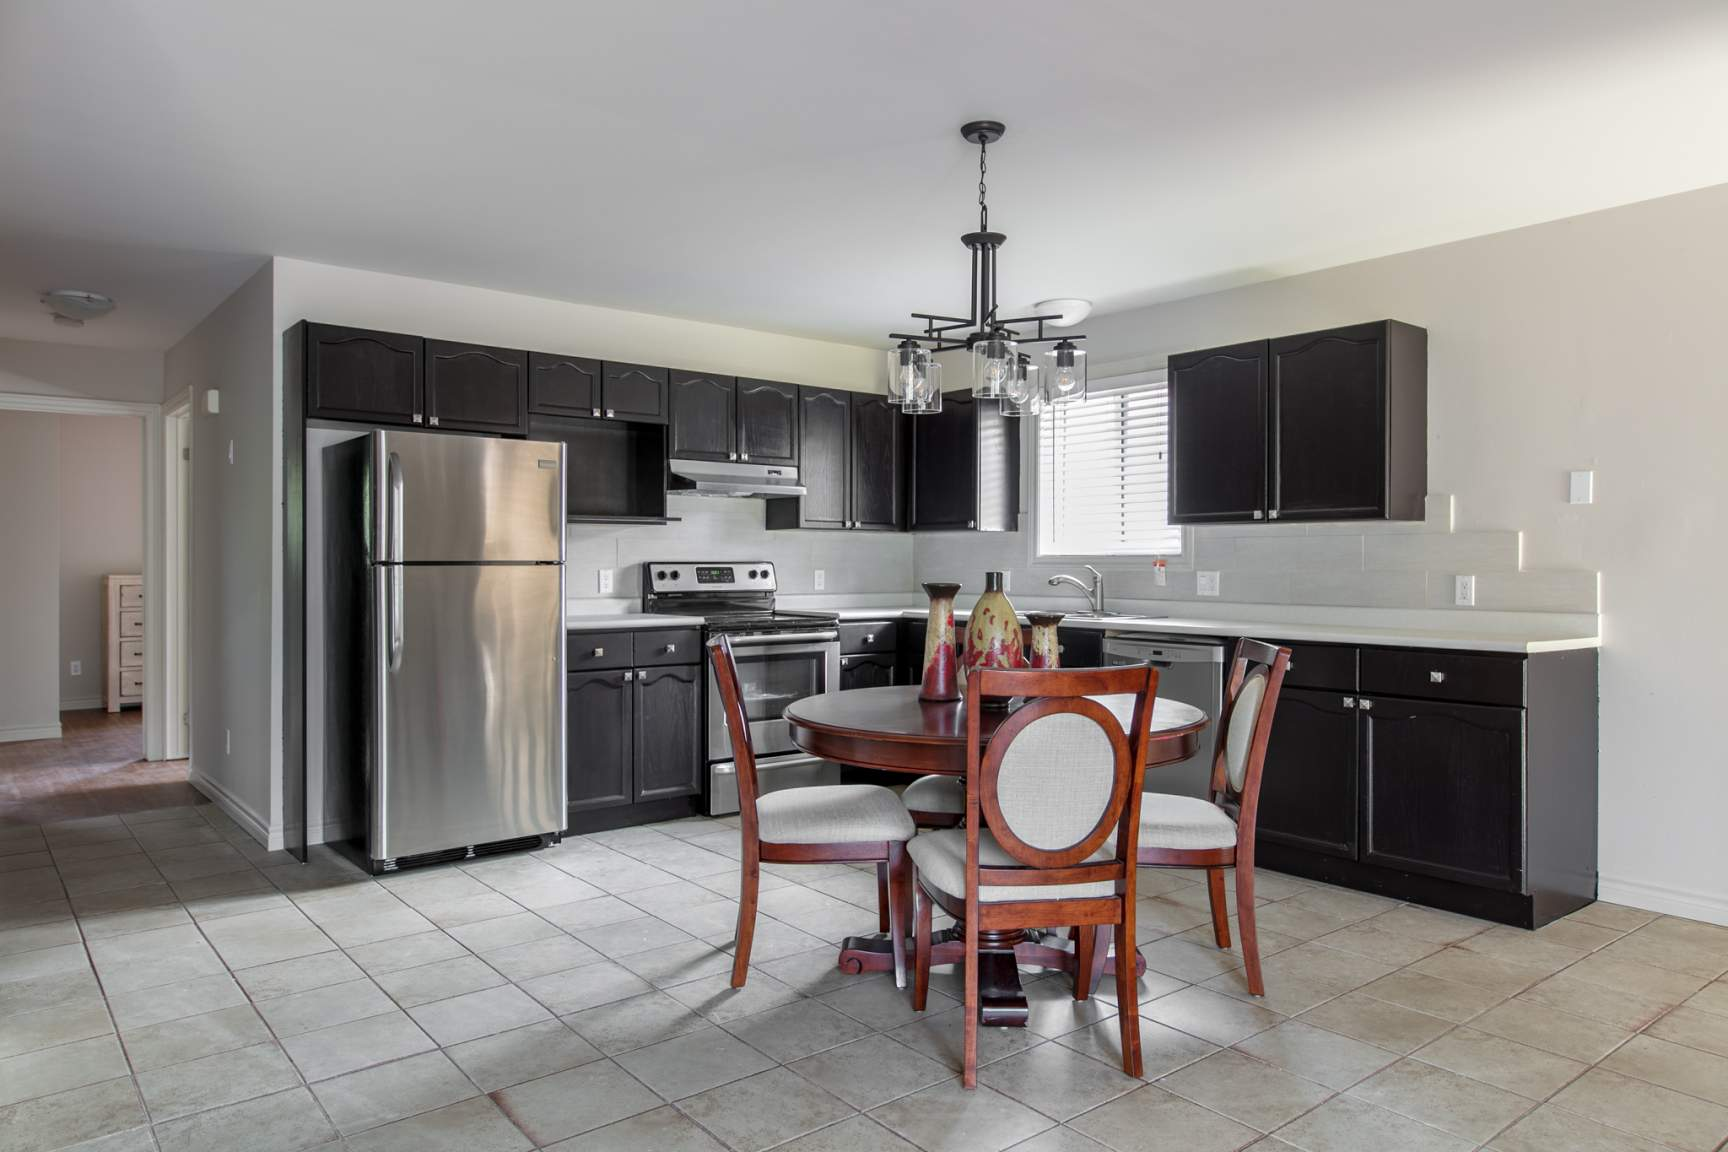 Eat in kitchen with stainless appliances and dishwasher.